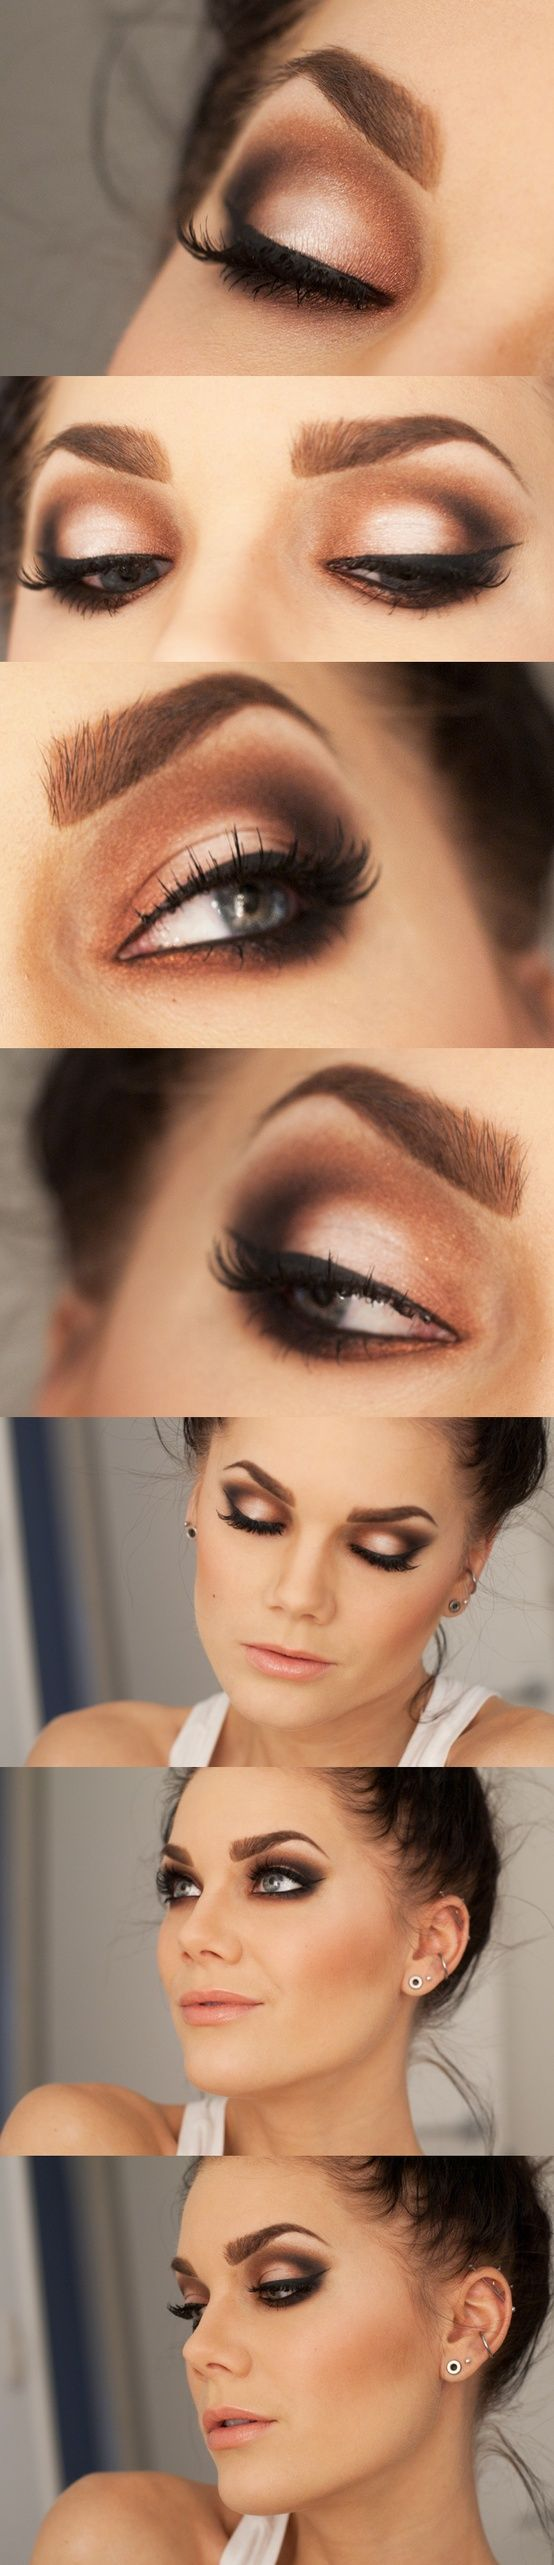 frosted smoky eye